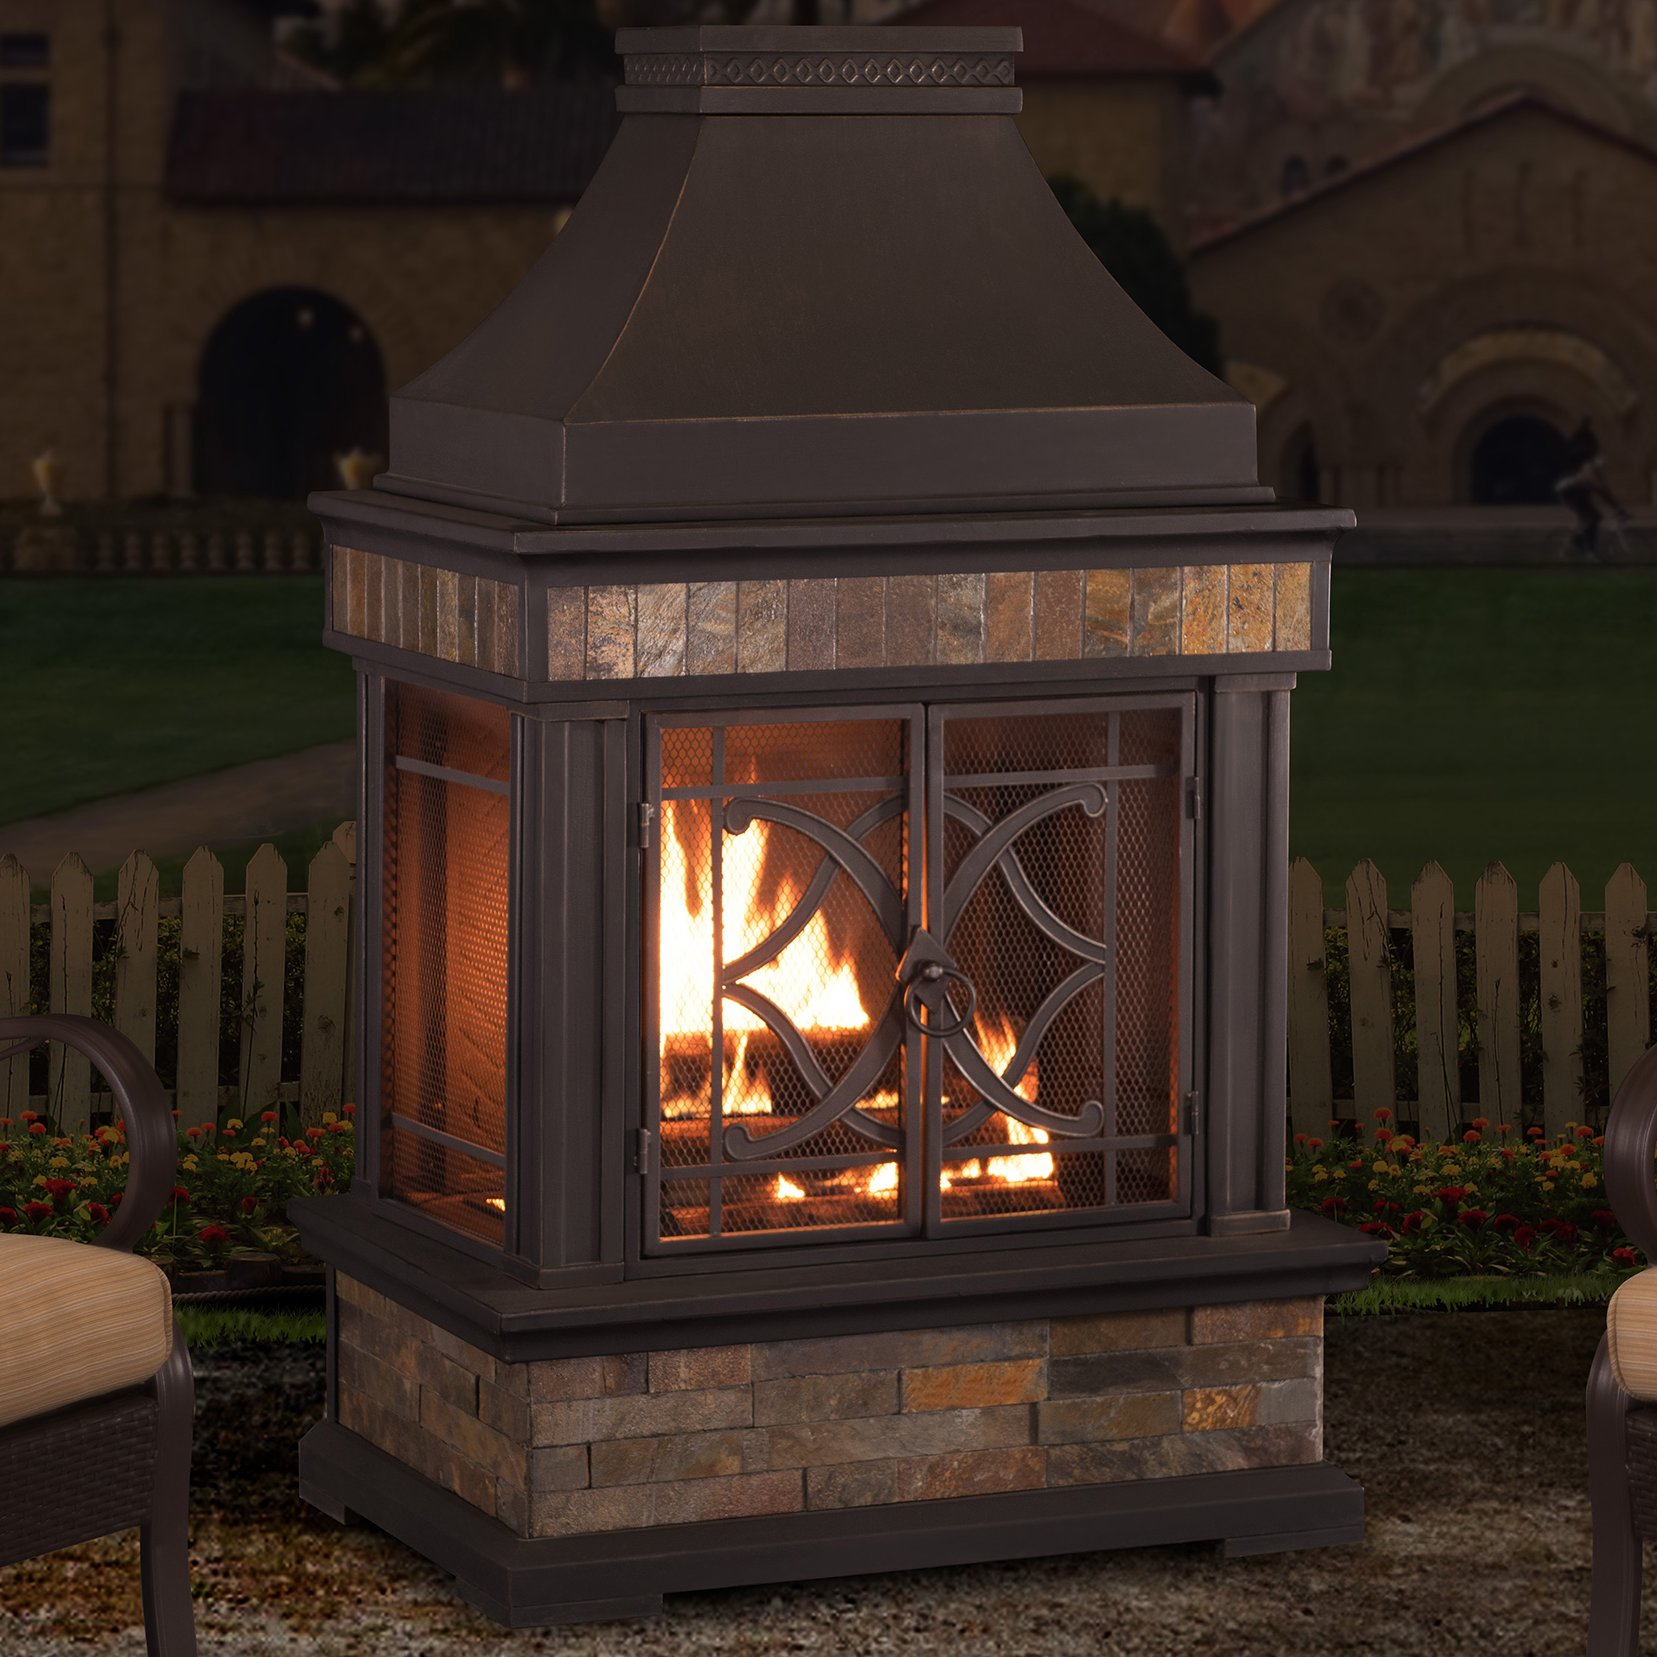 heirloom steel wood burning outdoor fireplace TDSQUDI